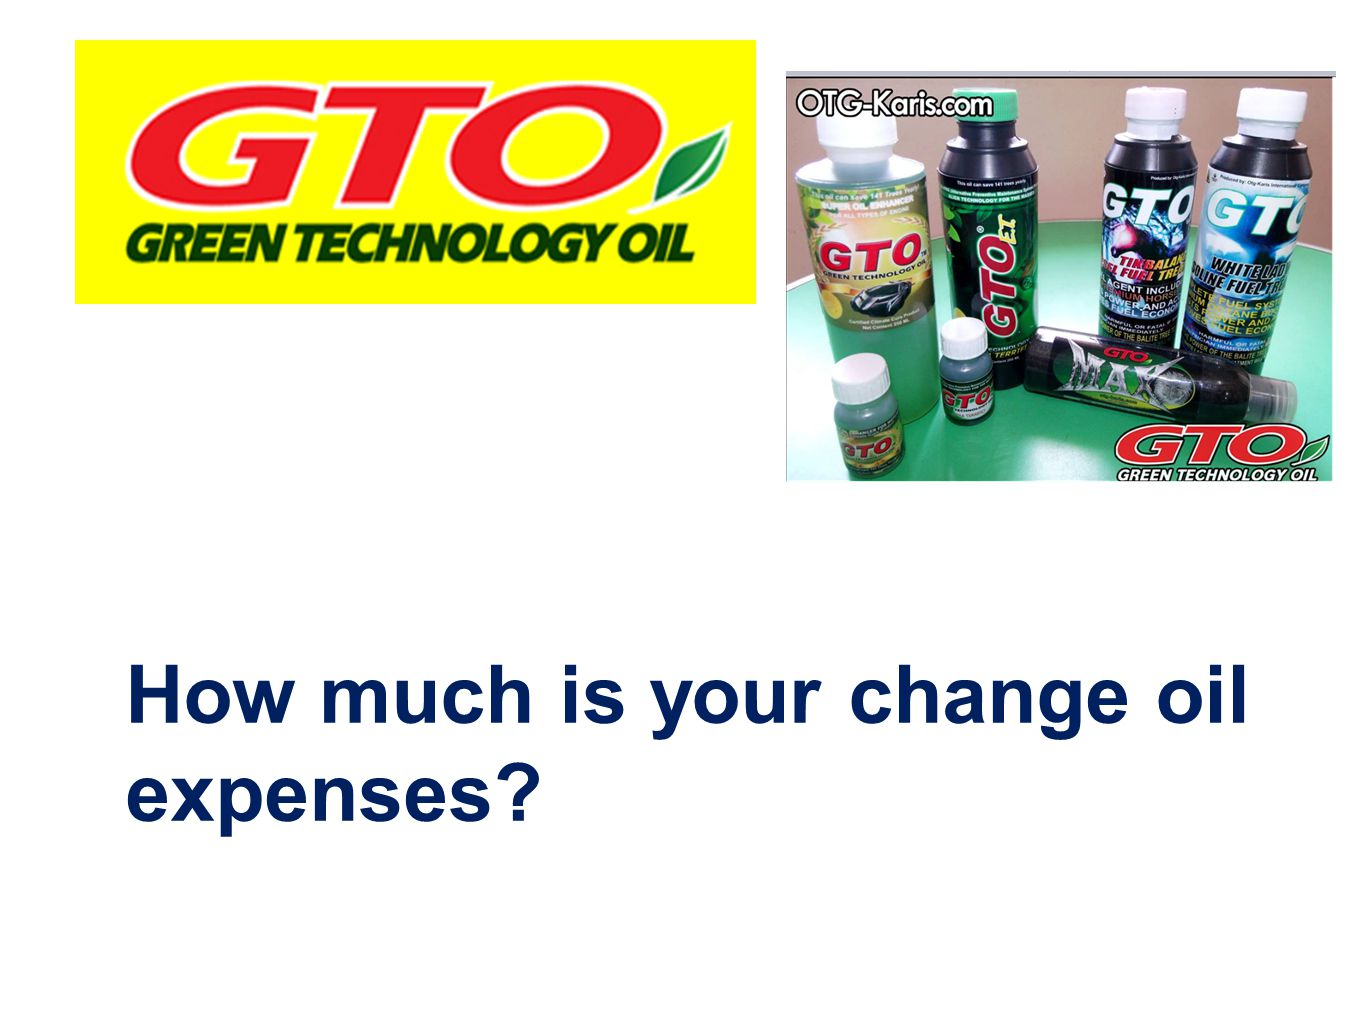 How much is your change oil expenses?